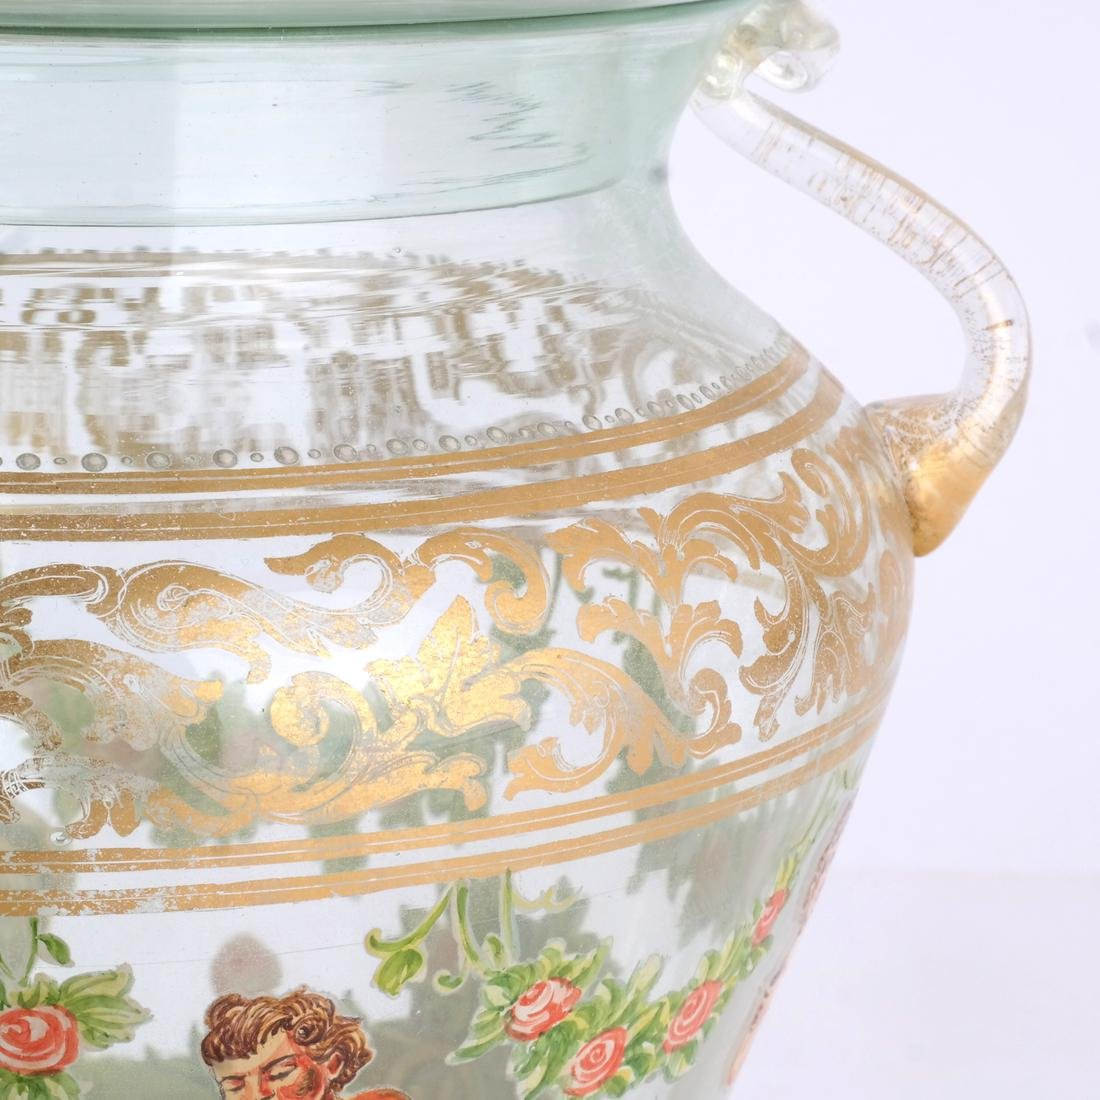 Venetian Overlay Covered Glass Jar - 4